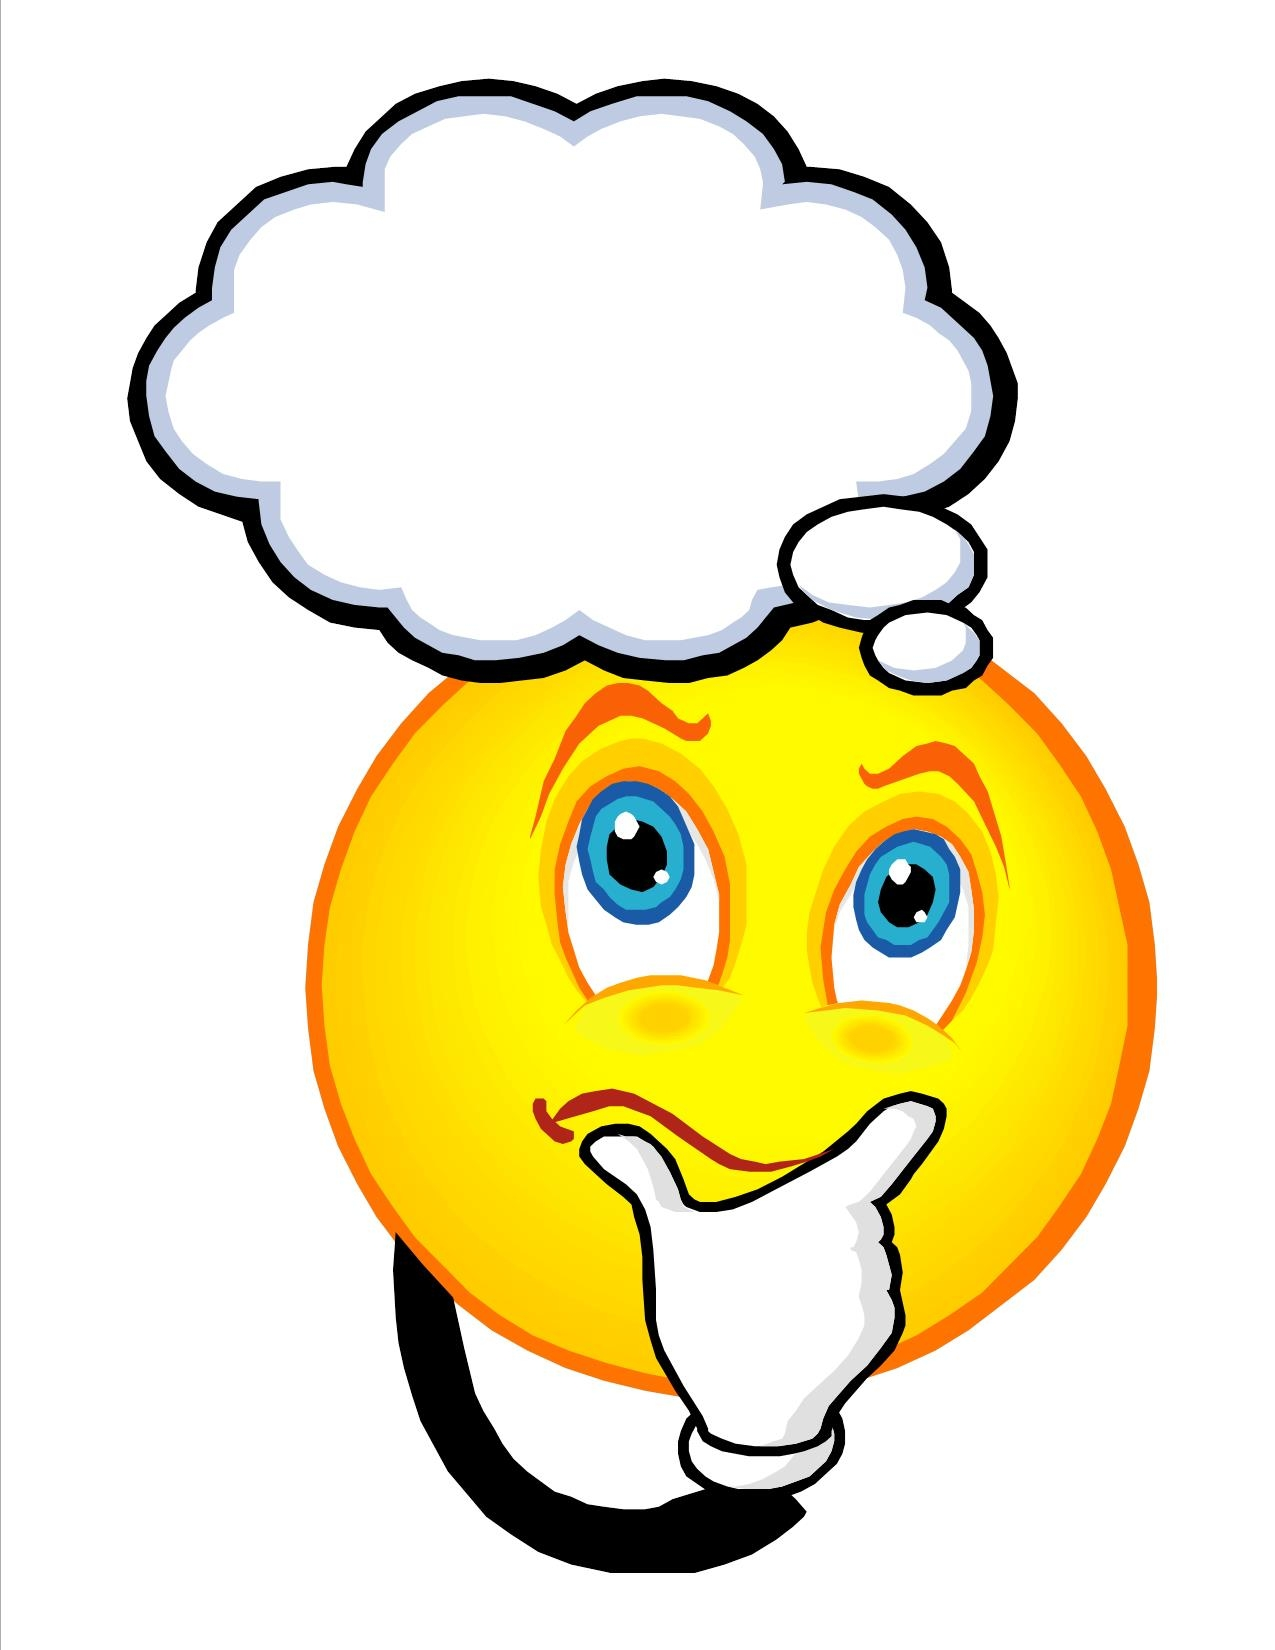 Smiley clipart confused Inspiration and Clipart Emoticon Art